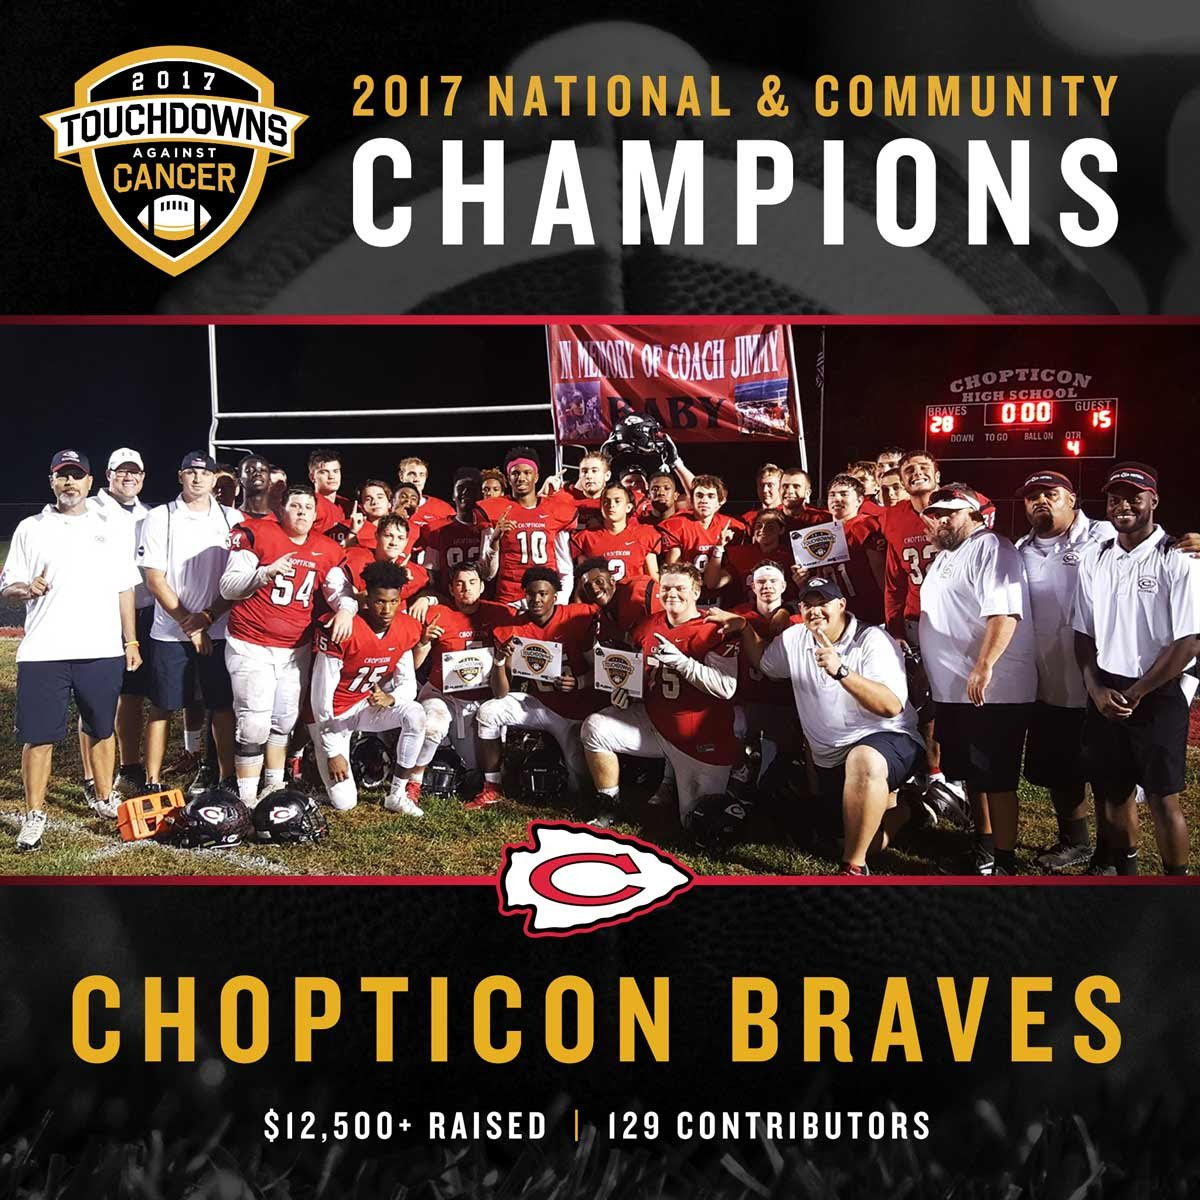 Football Team National Champions in the Touchdowns Against Cancer Campaign with over $12,000 in pledges